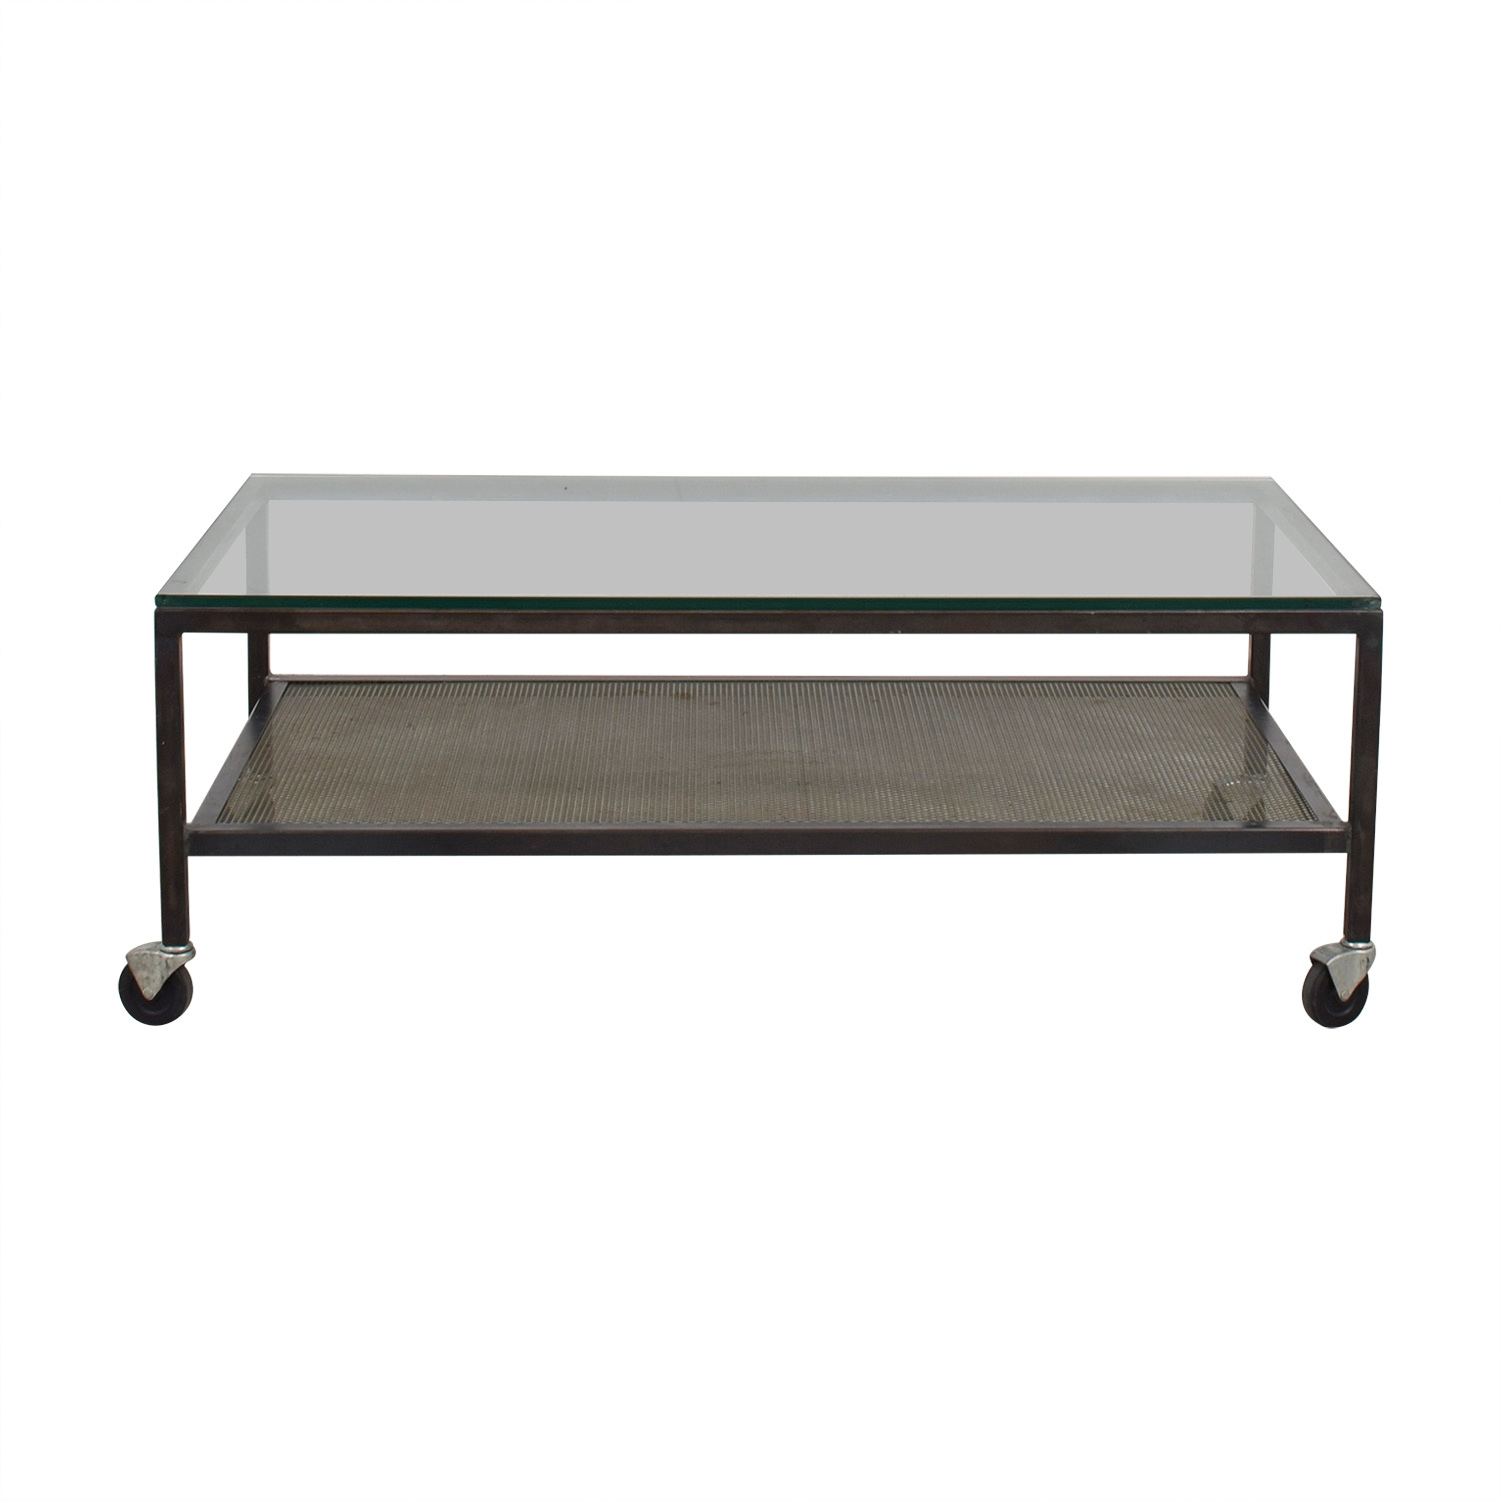 Mitchell Gold + Bob Williams Mitchell Gold + Bob Williams Industrial Glass Coffee Table on Castors price